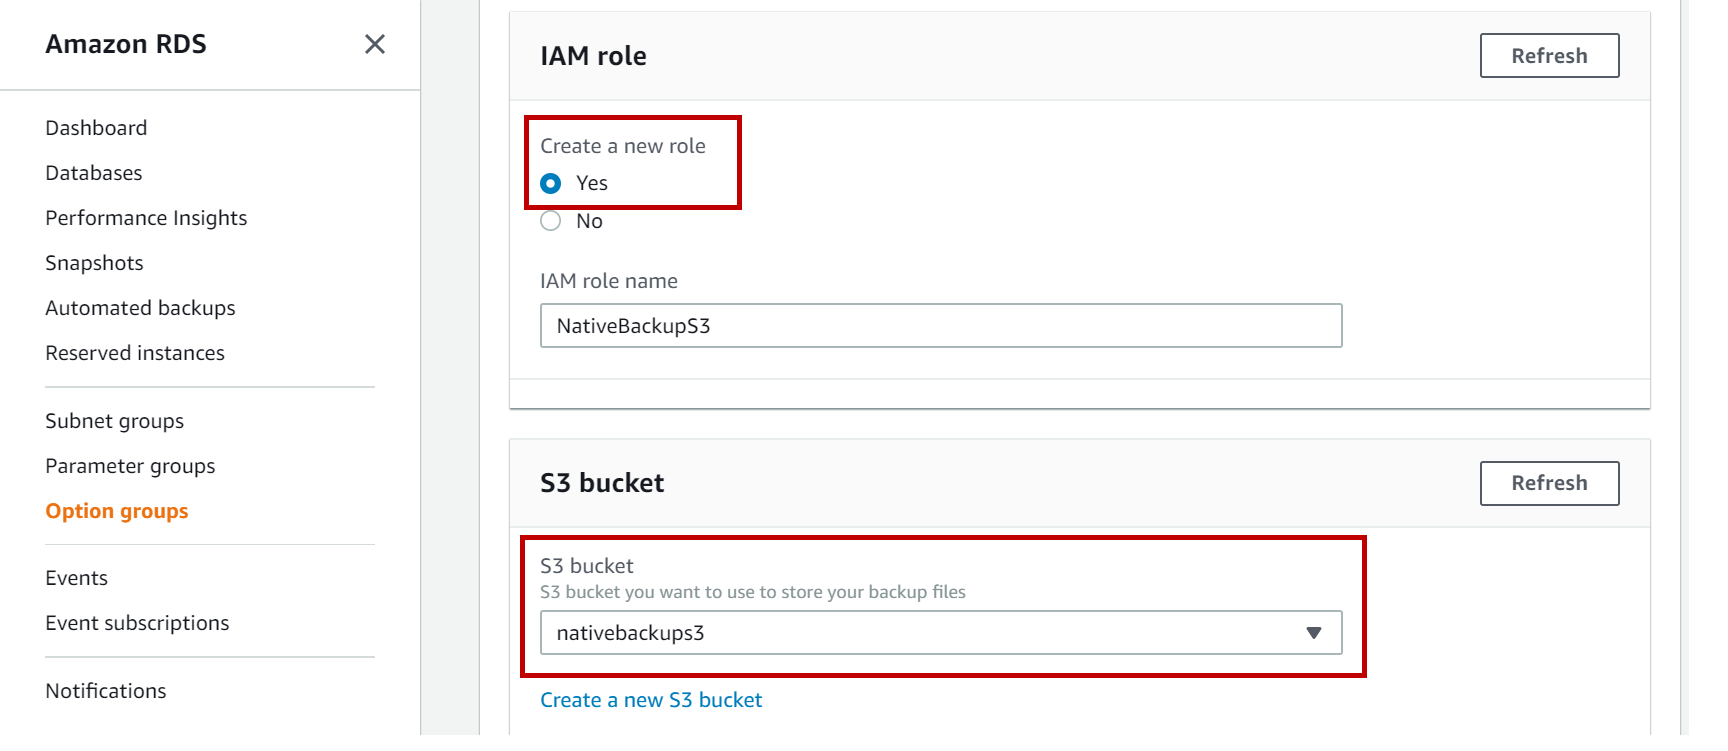 AWS RDS SQL Server recovery models, backups and restores